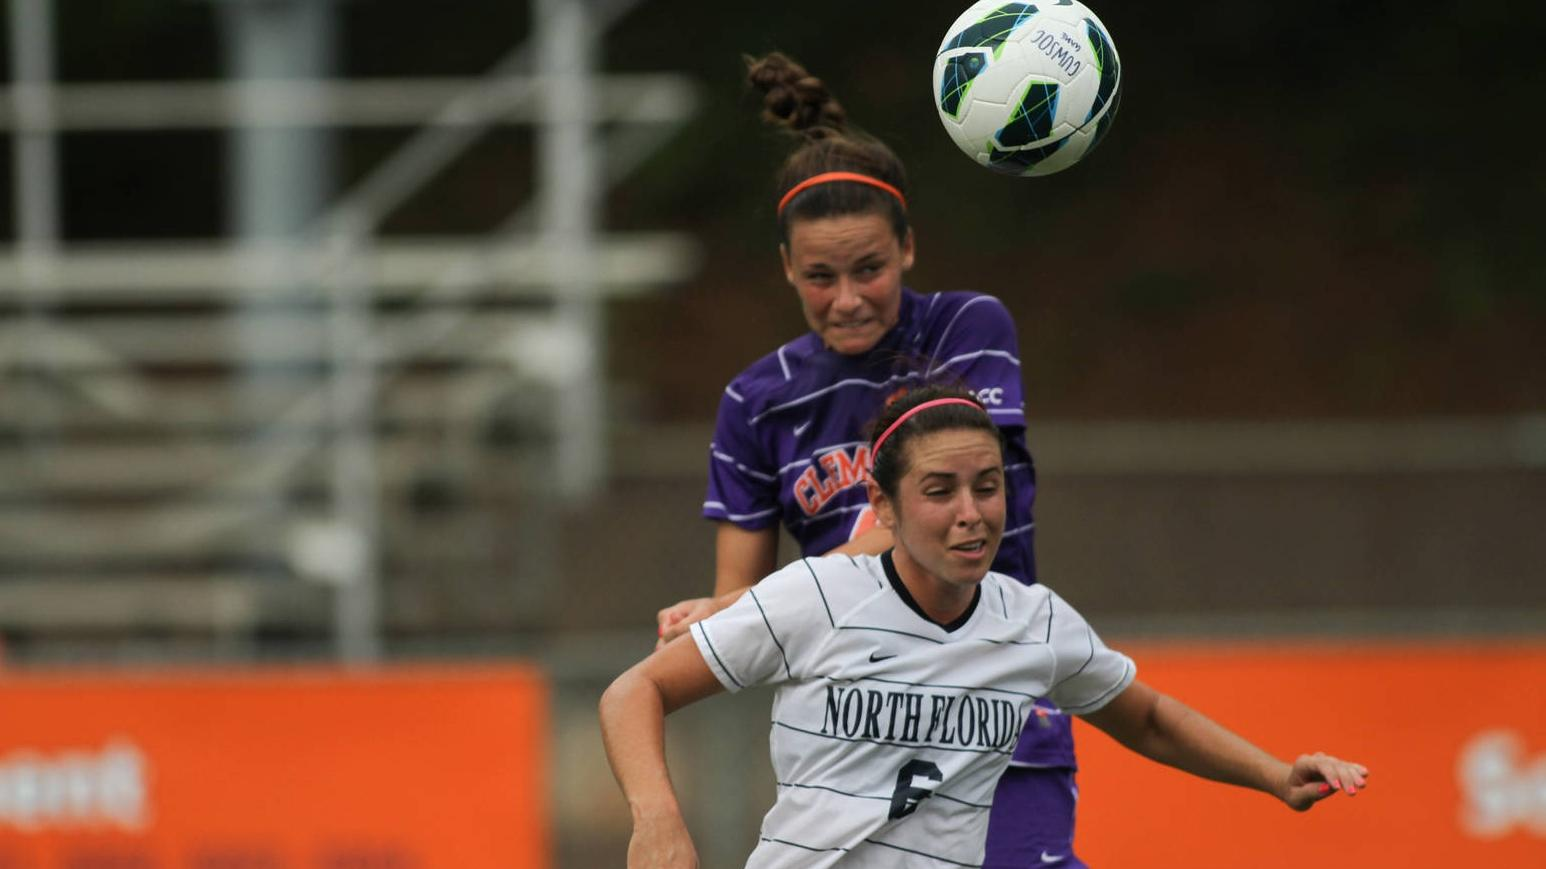 Clemson Women's Soccer Team Defeats North Florida on Sunday Afternoon